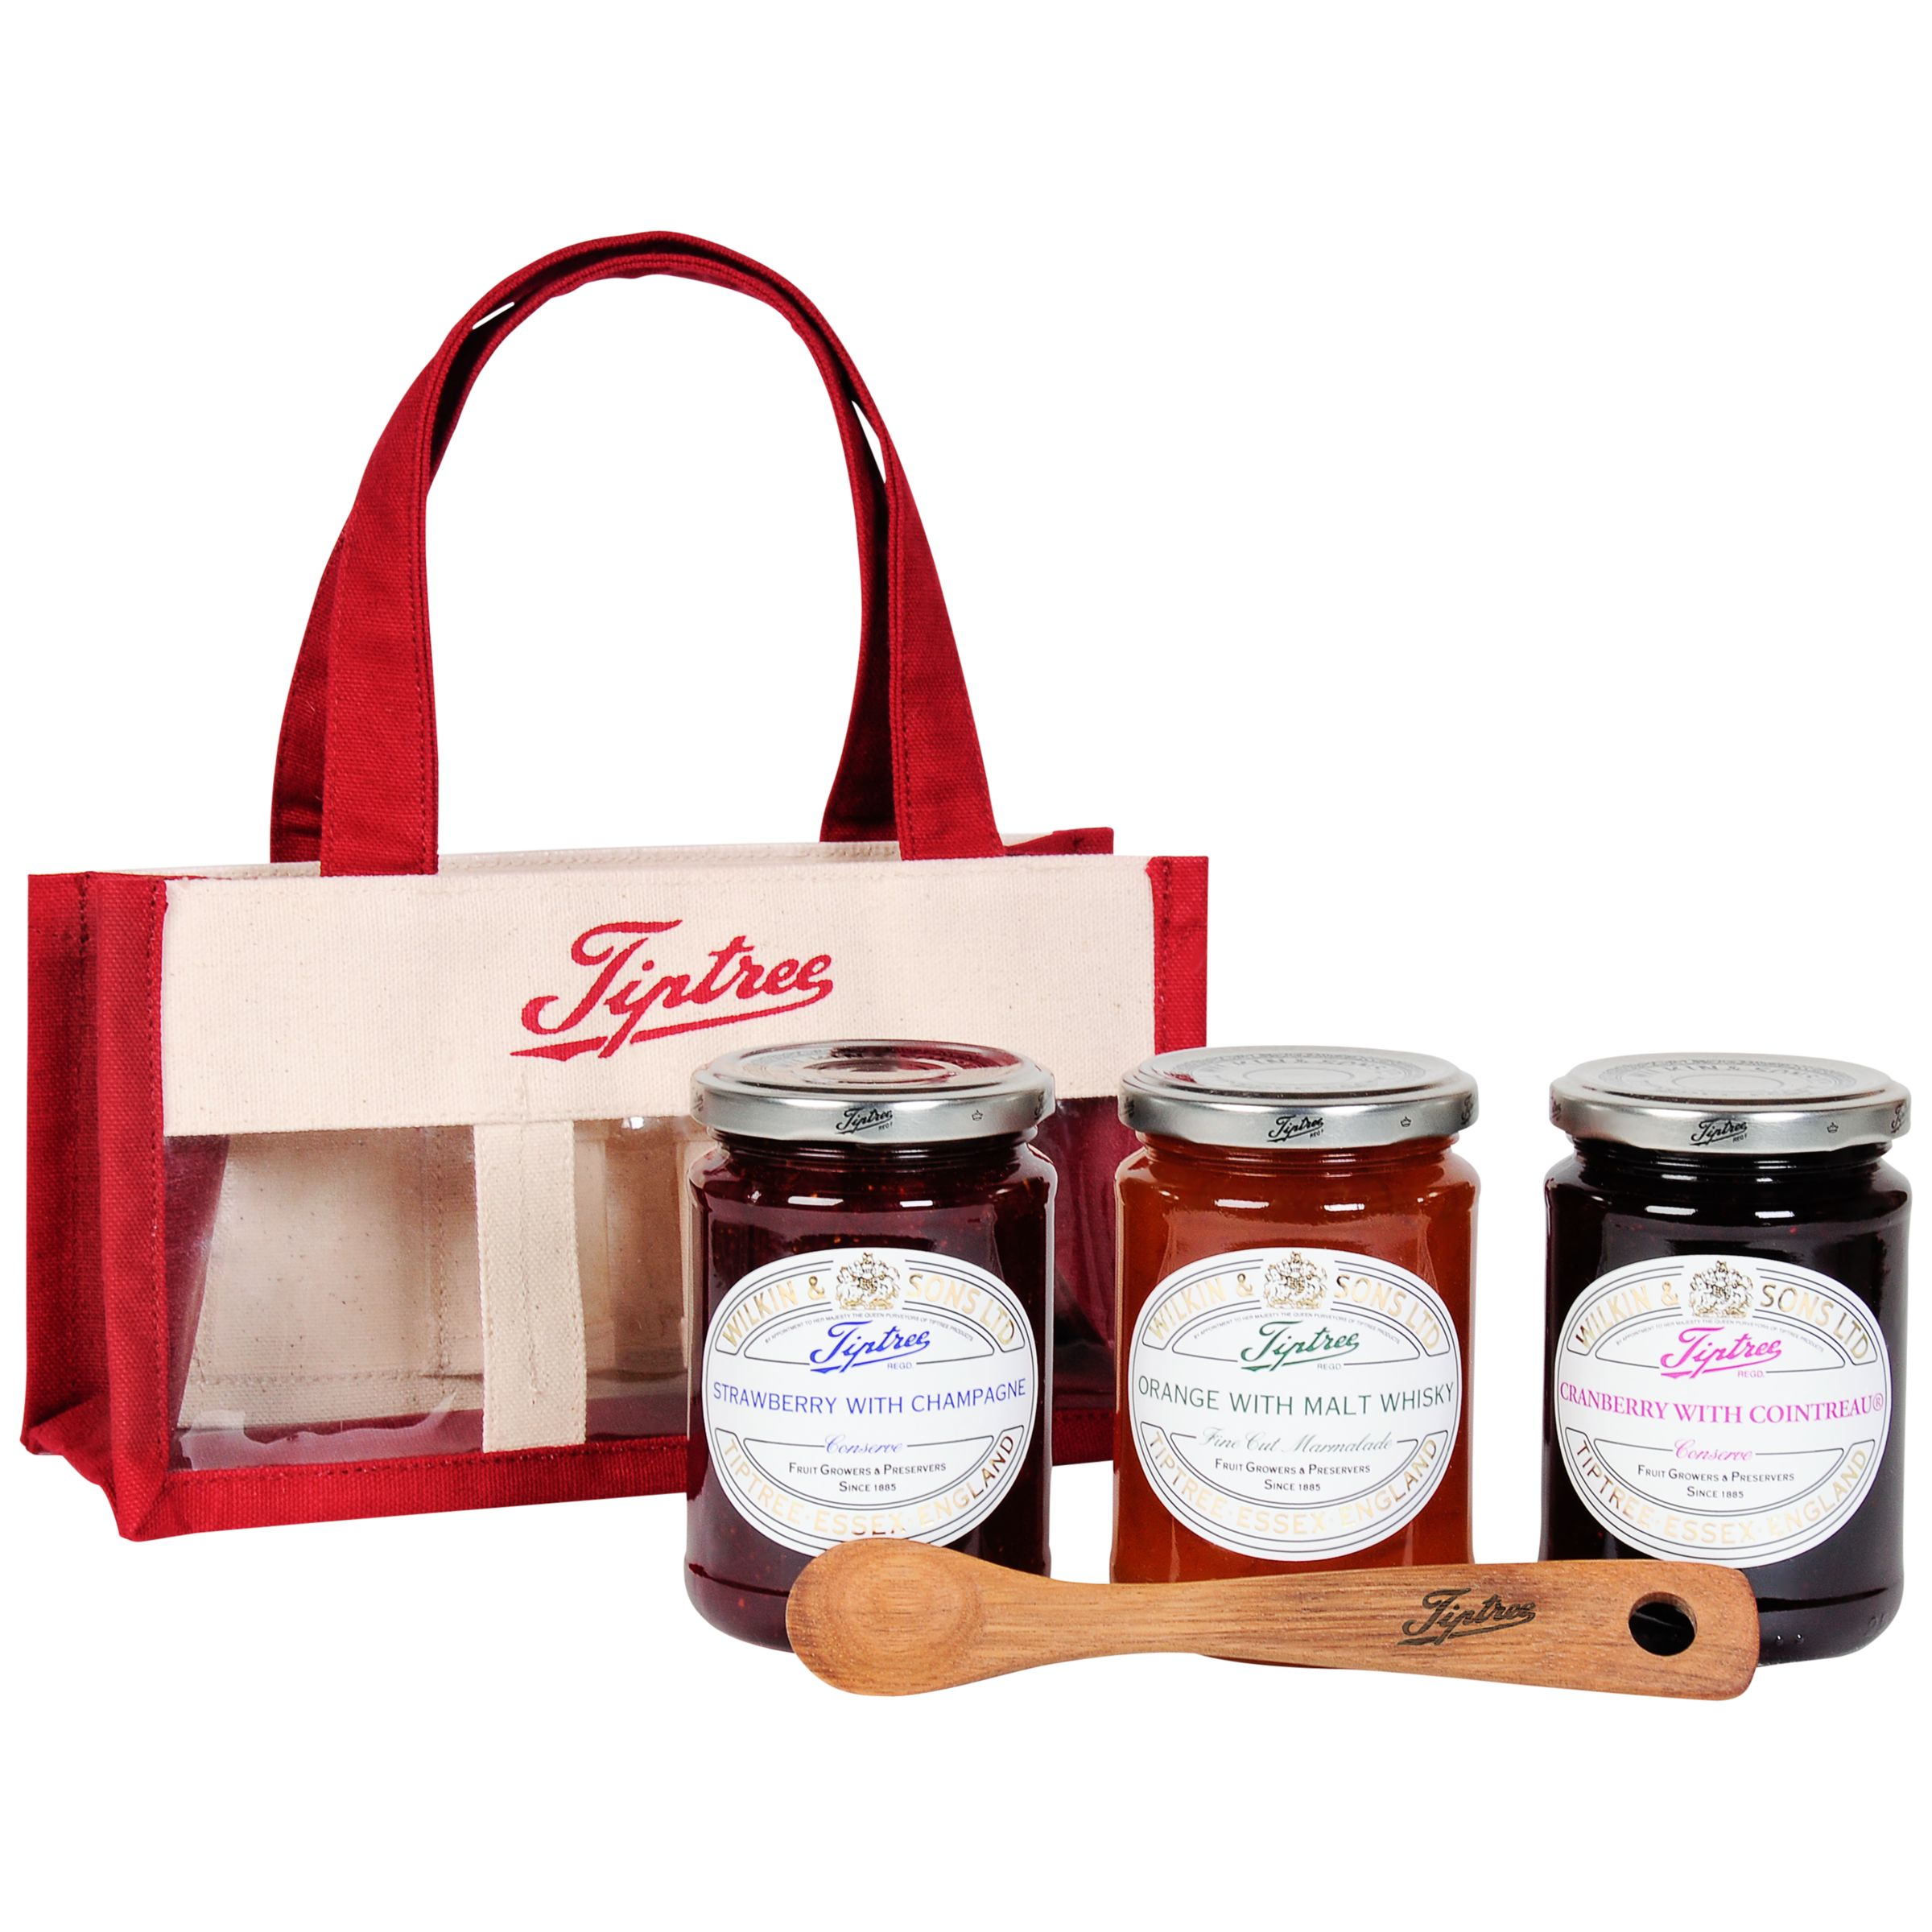 Wilkin & Sons Wilkin & Sons Tiptree The Speciality Selection, 3 x 340g